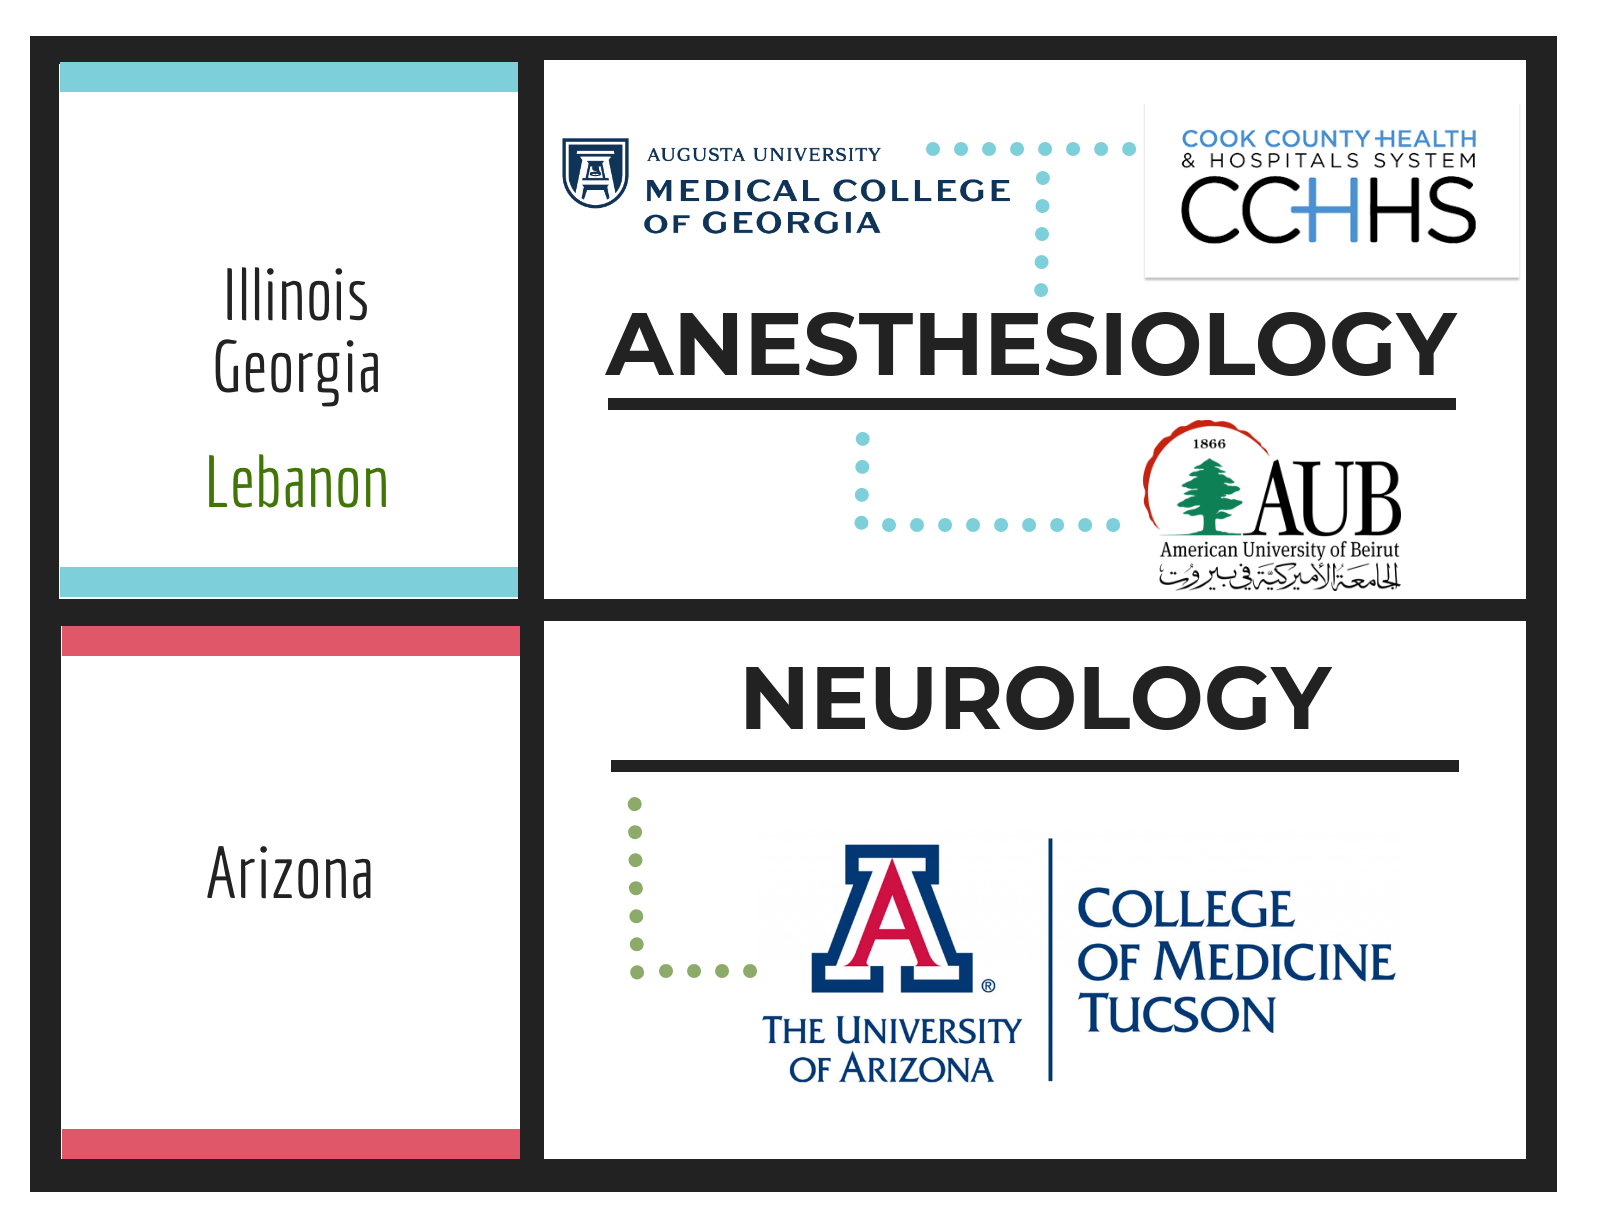 Trinity School of Medicine 2018 Anesthesiology Matches